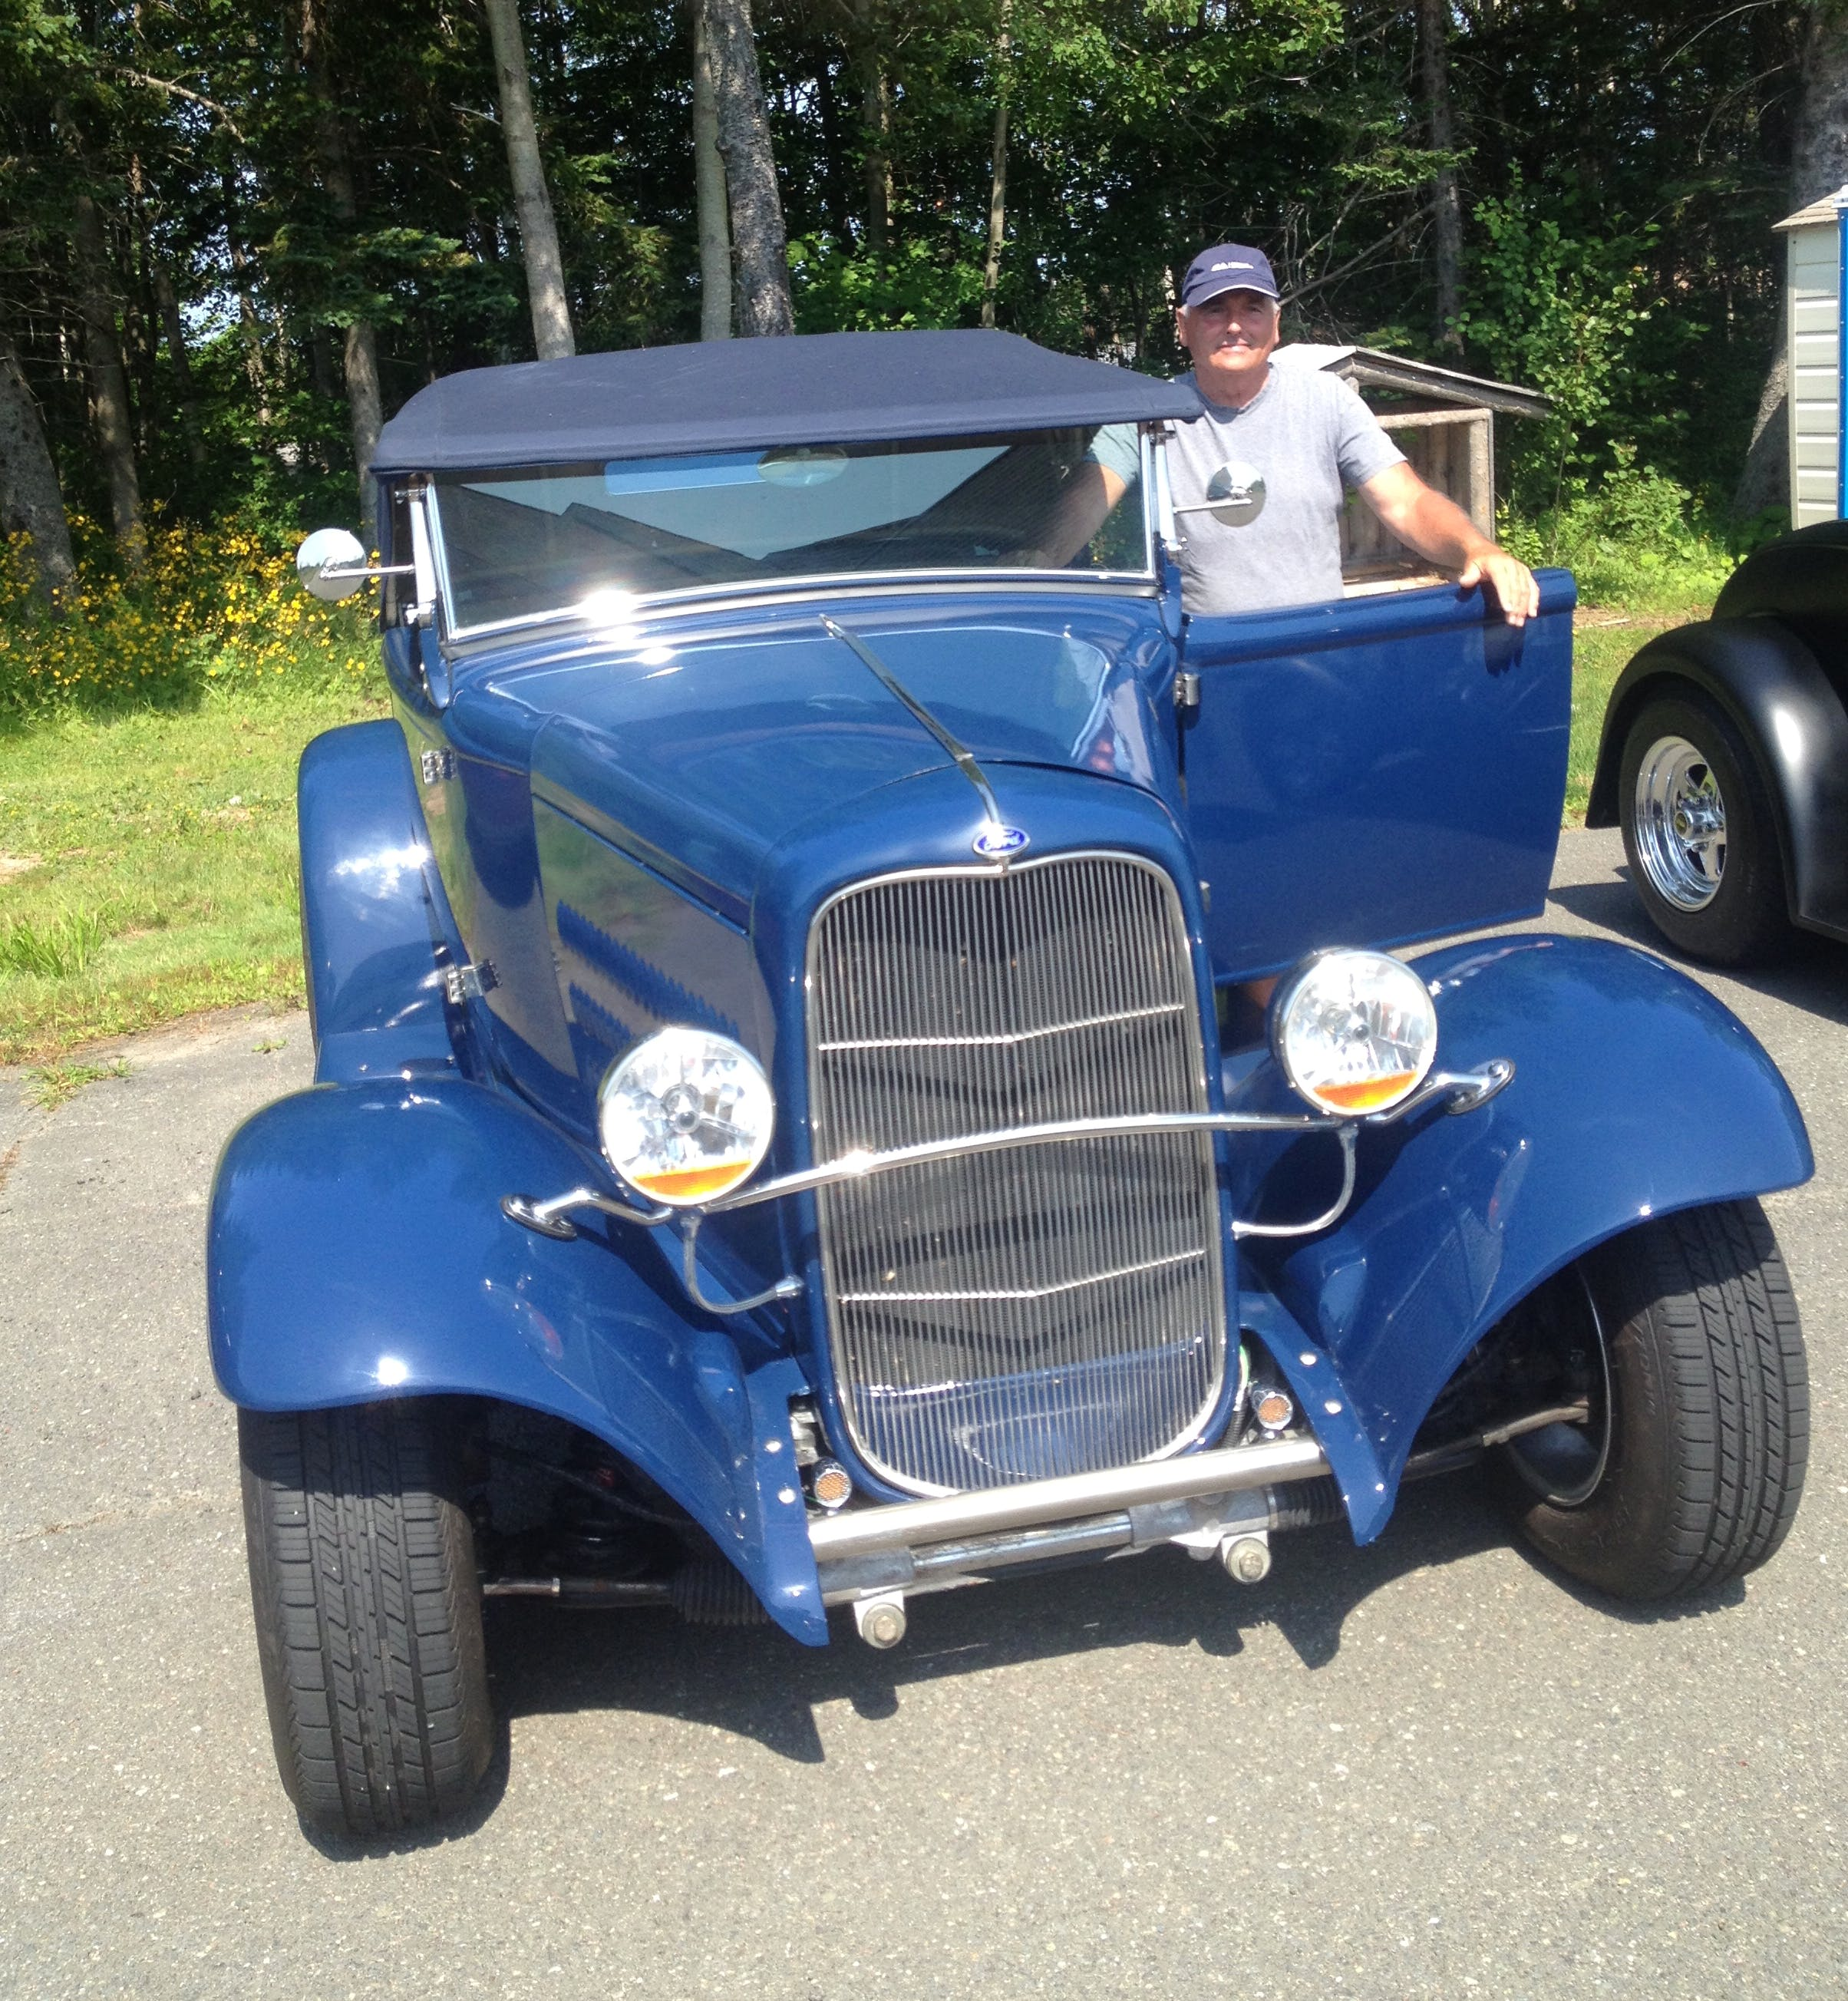 Donald Hiscock of Georges River loves his 1930 Ford Roadster. He started restoring it two years ago and it is finally complete.